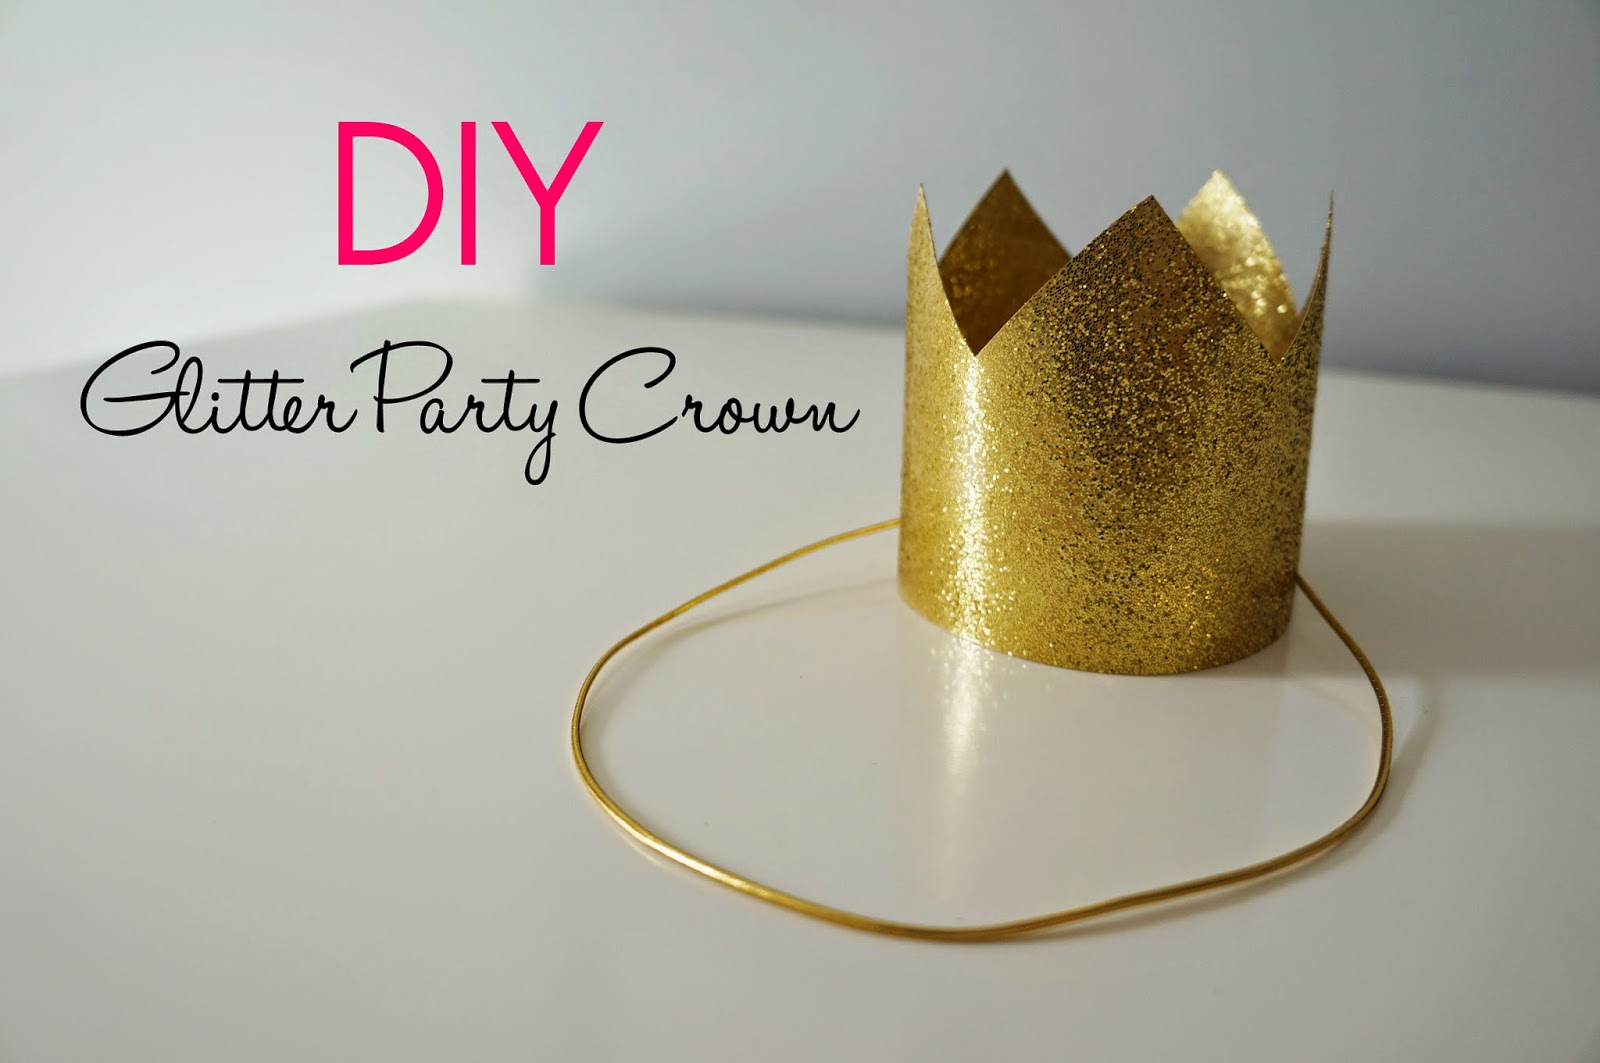 DIY Glitter Party Crown hellokelcey.blogspot.com